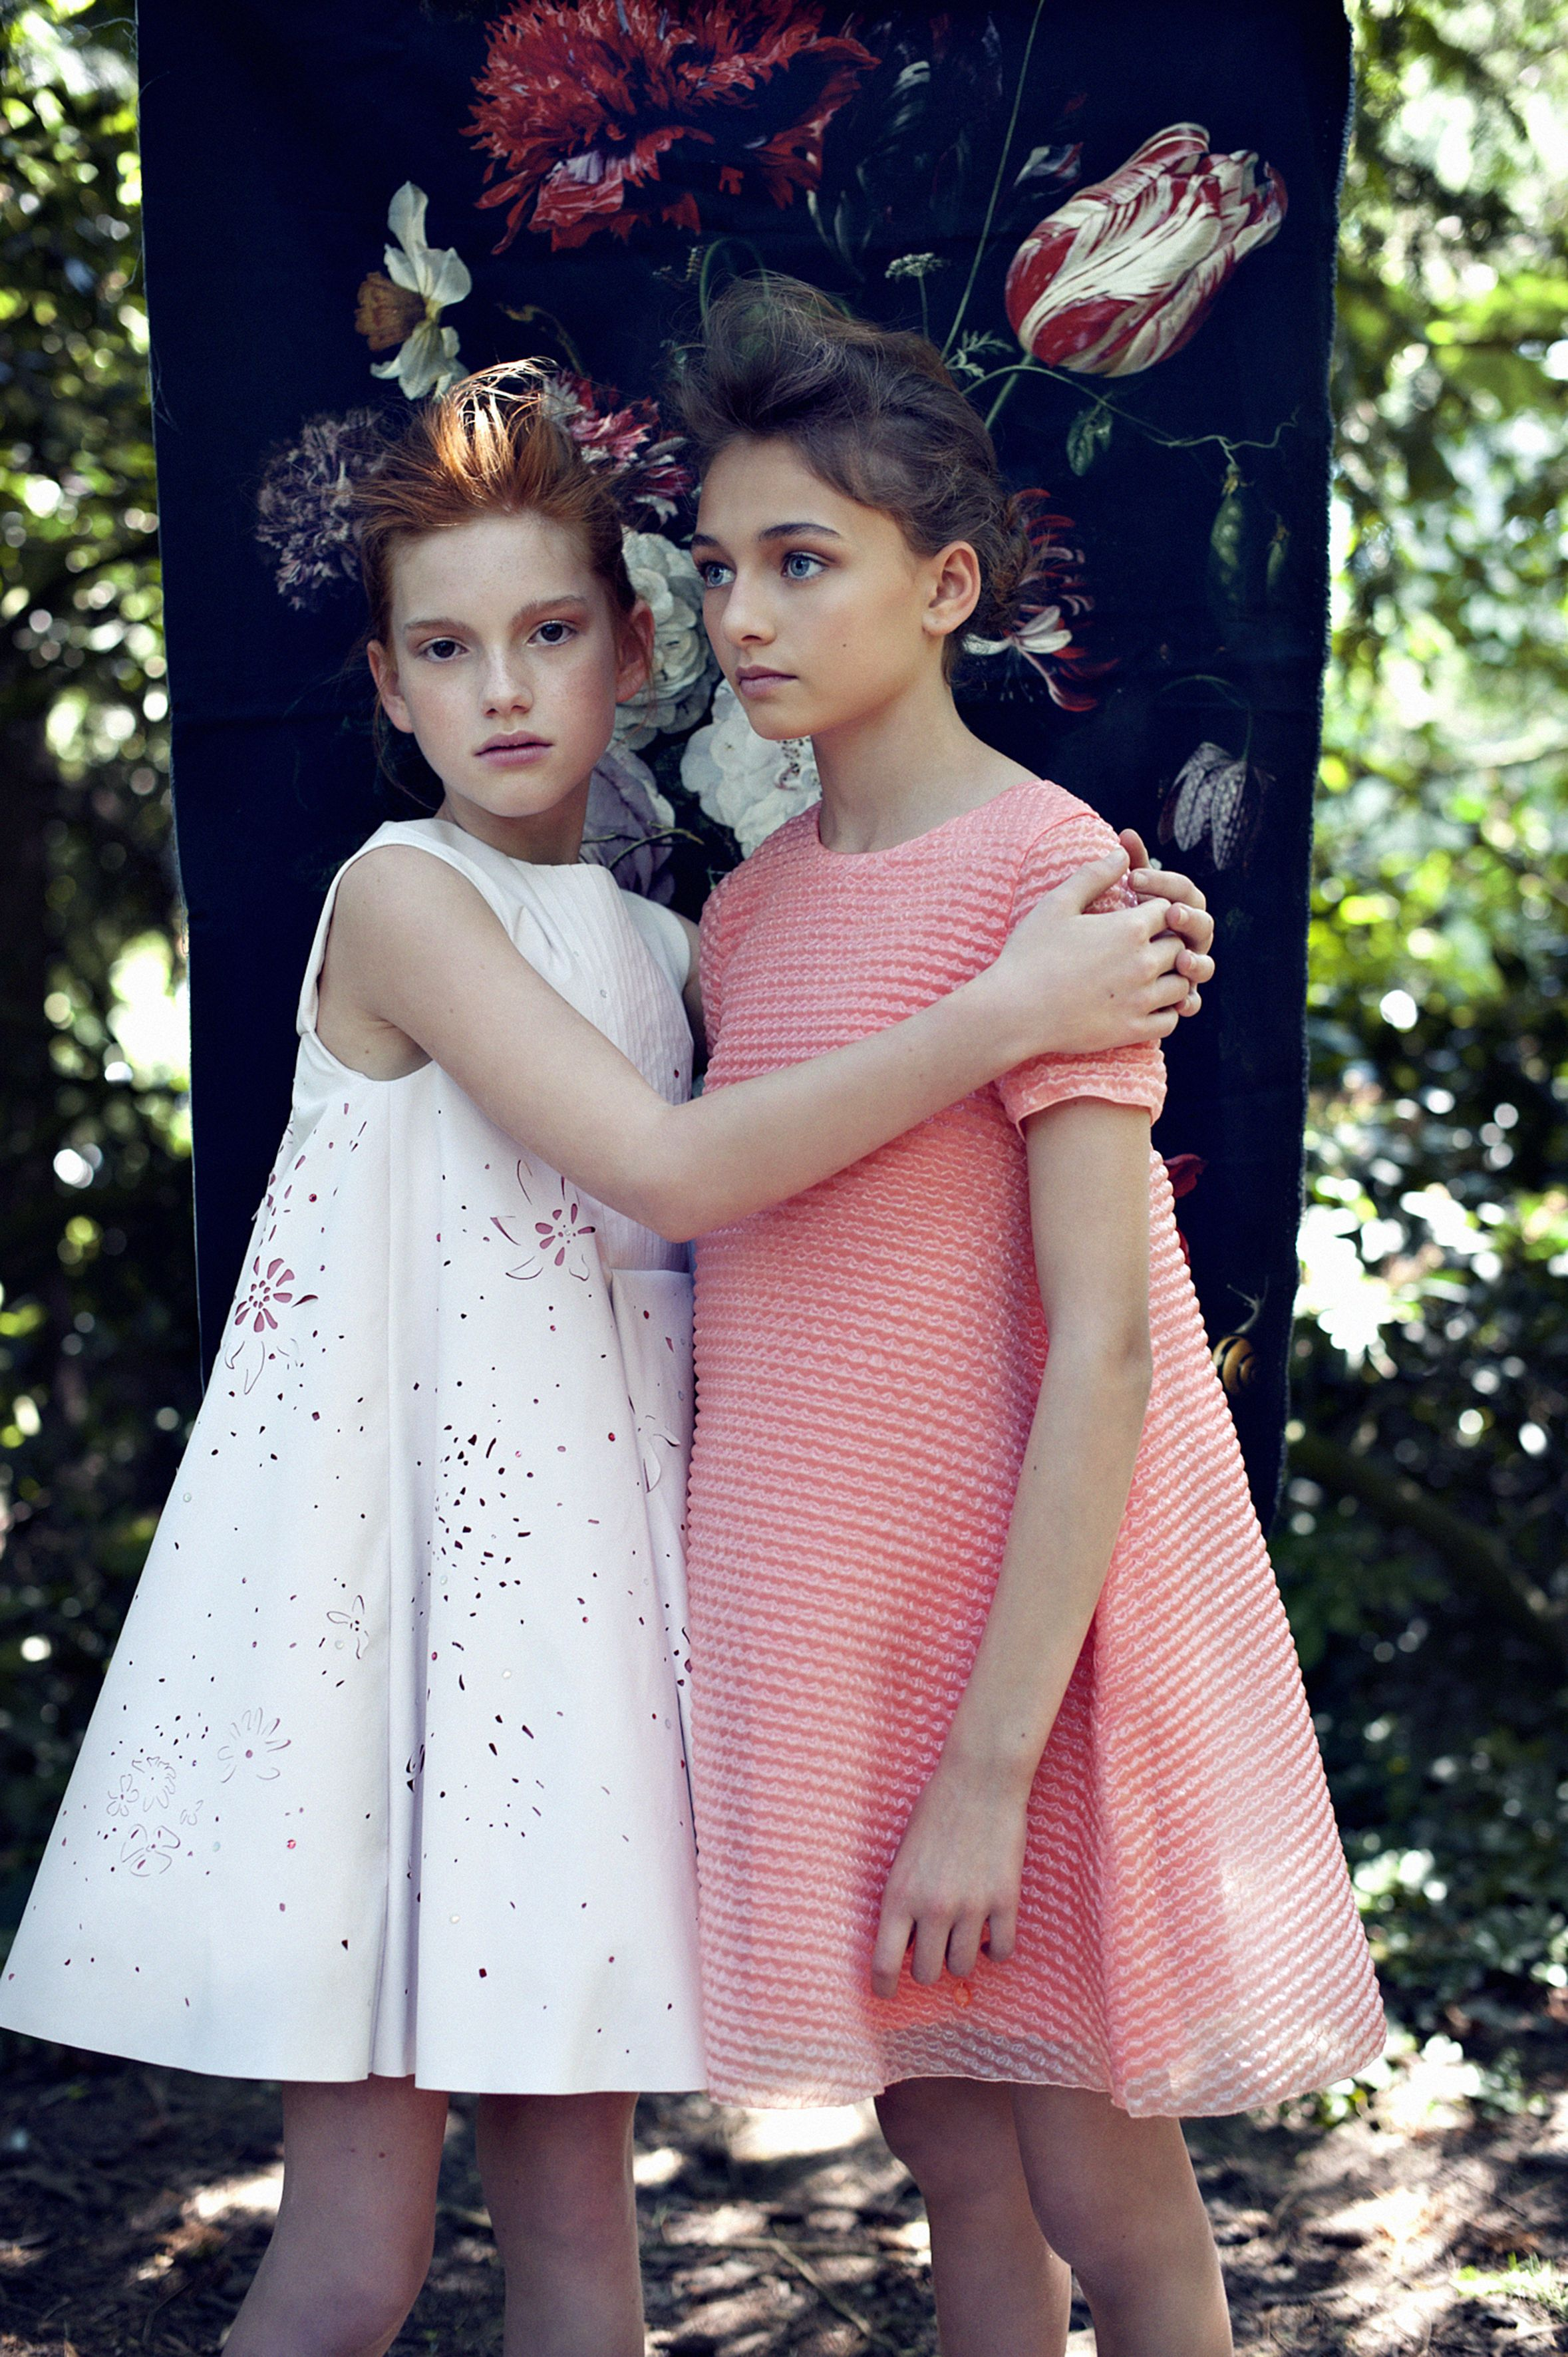 Dior dresses for Hooligans Magazine issue 9 by Nadja Pollack Photography 5347af31b9f